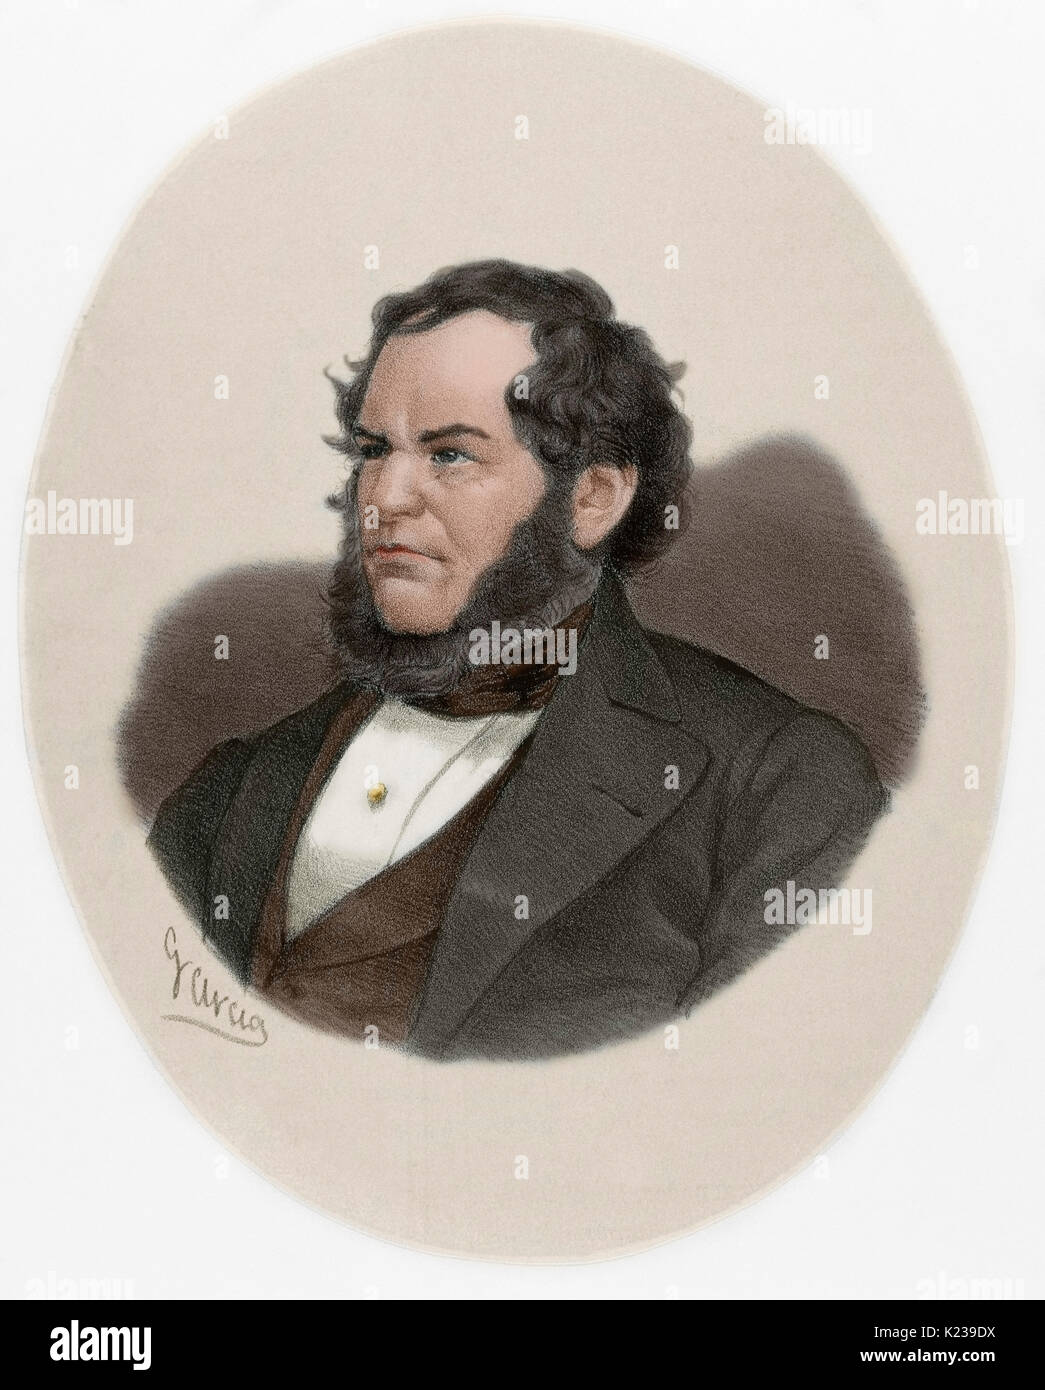 Edward George Geoffrey Smith-Stanley, 14th Earl of Derby, (1799-1869). British statesman and Prime Minister of the United Kingdom. Leader of the Conservative Party. Portrait. Engraving by Garcia. Colored. - Stock Image